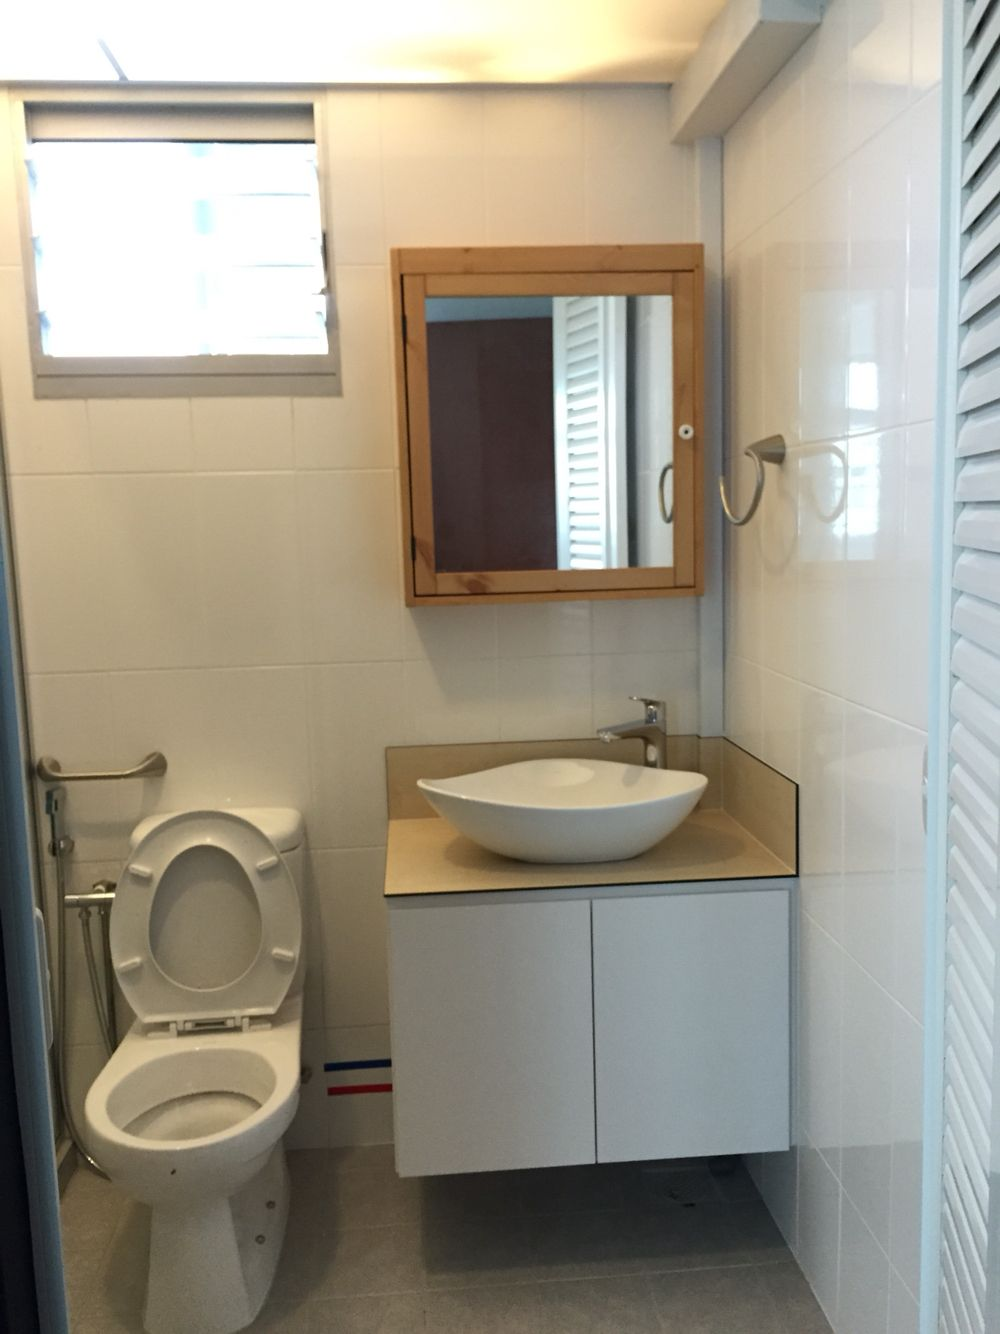 Ikea Mirror Cabinet Washroom Wood Basin Hdb Our Minimalist Scandinavian Project Pinterest